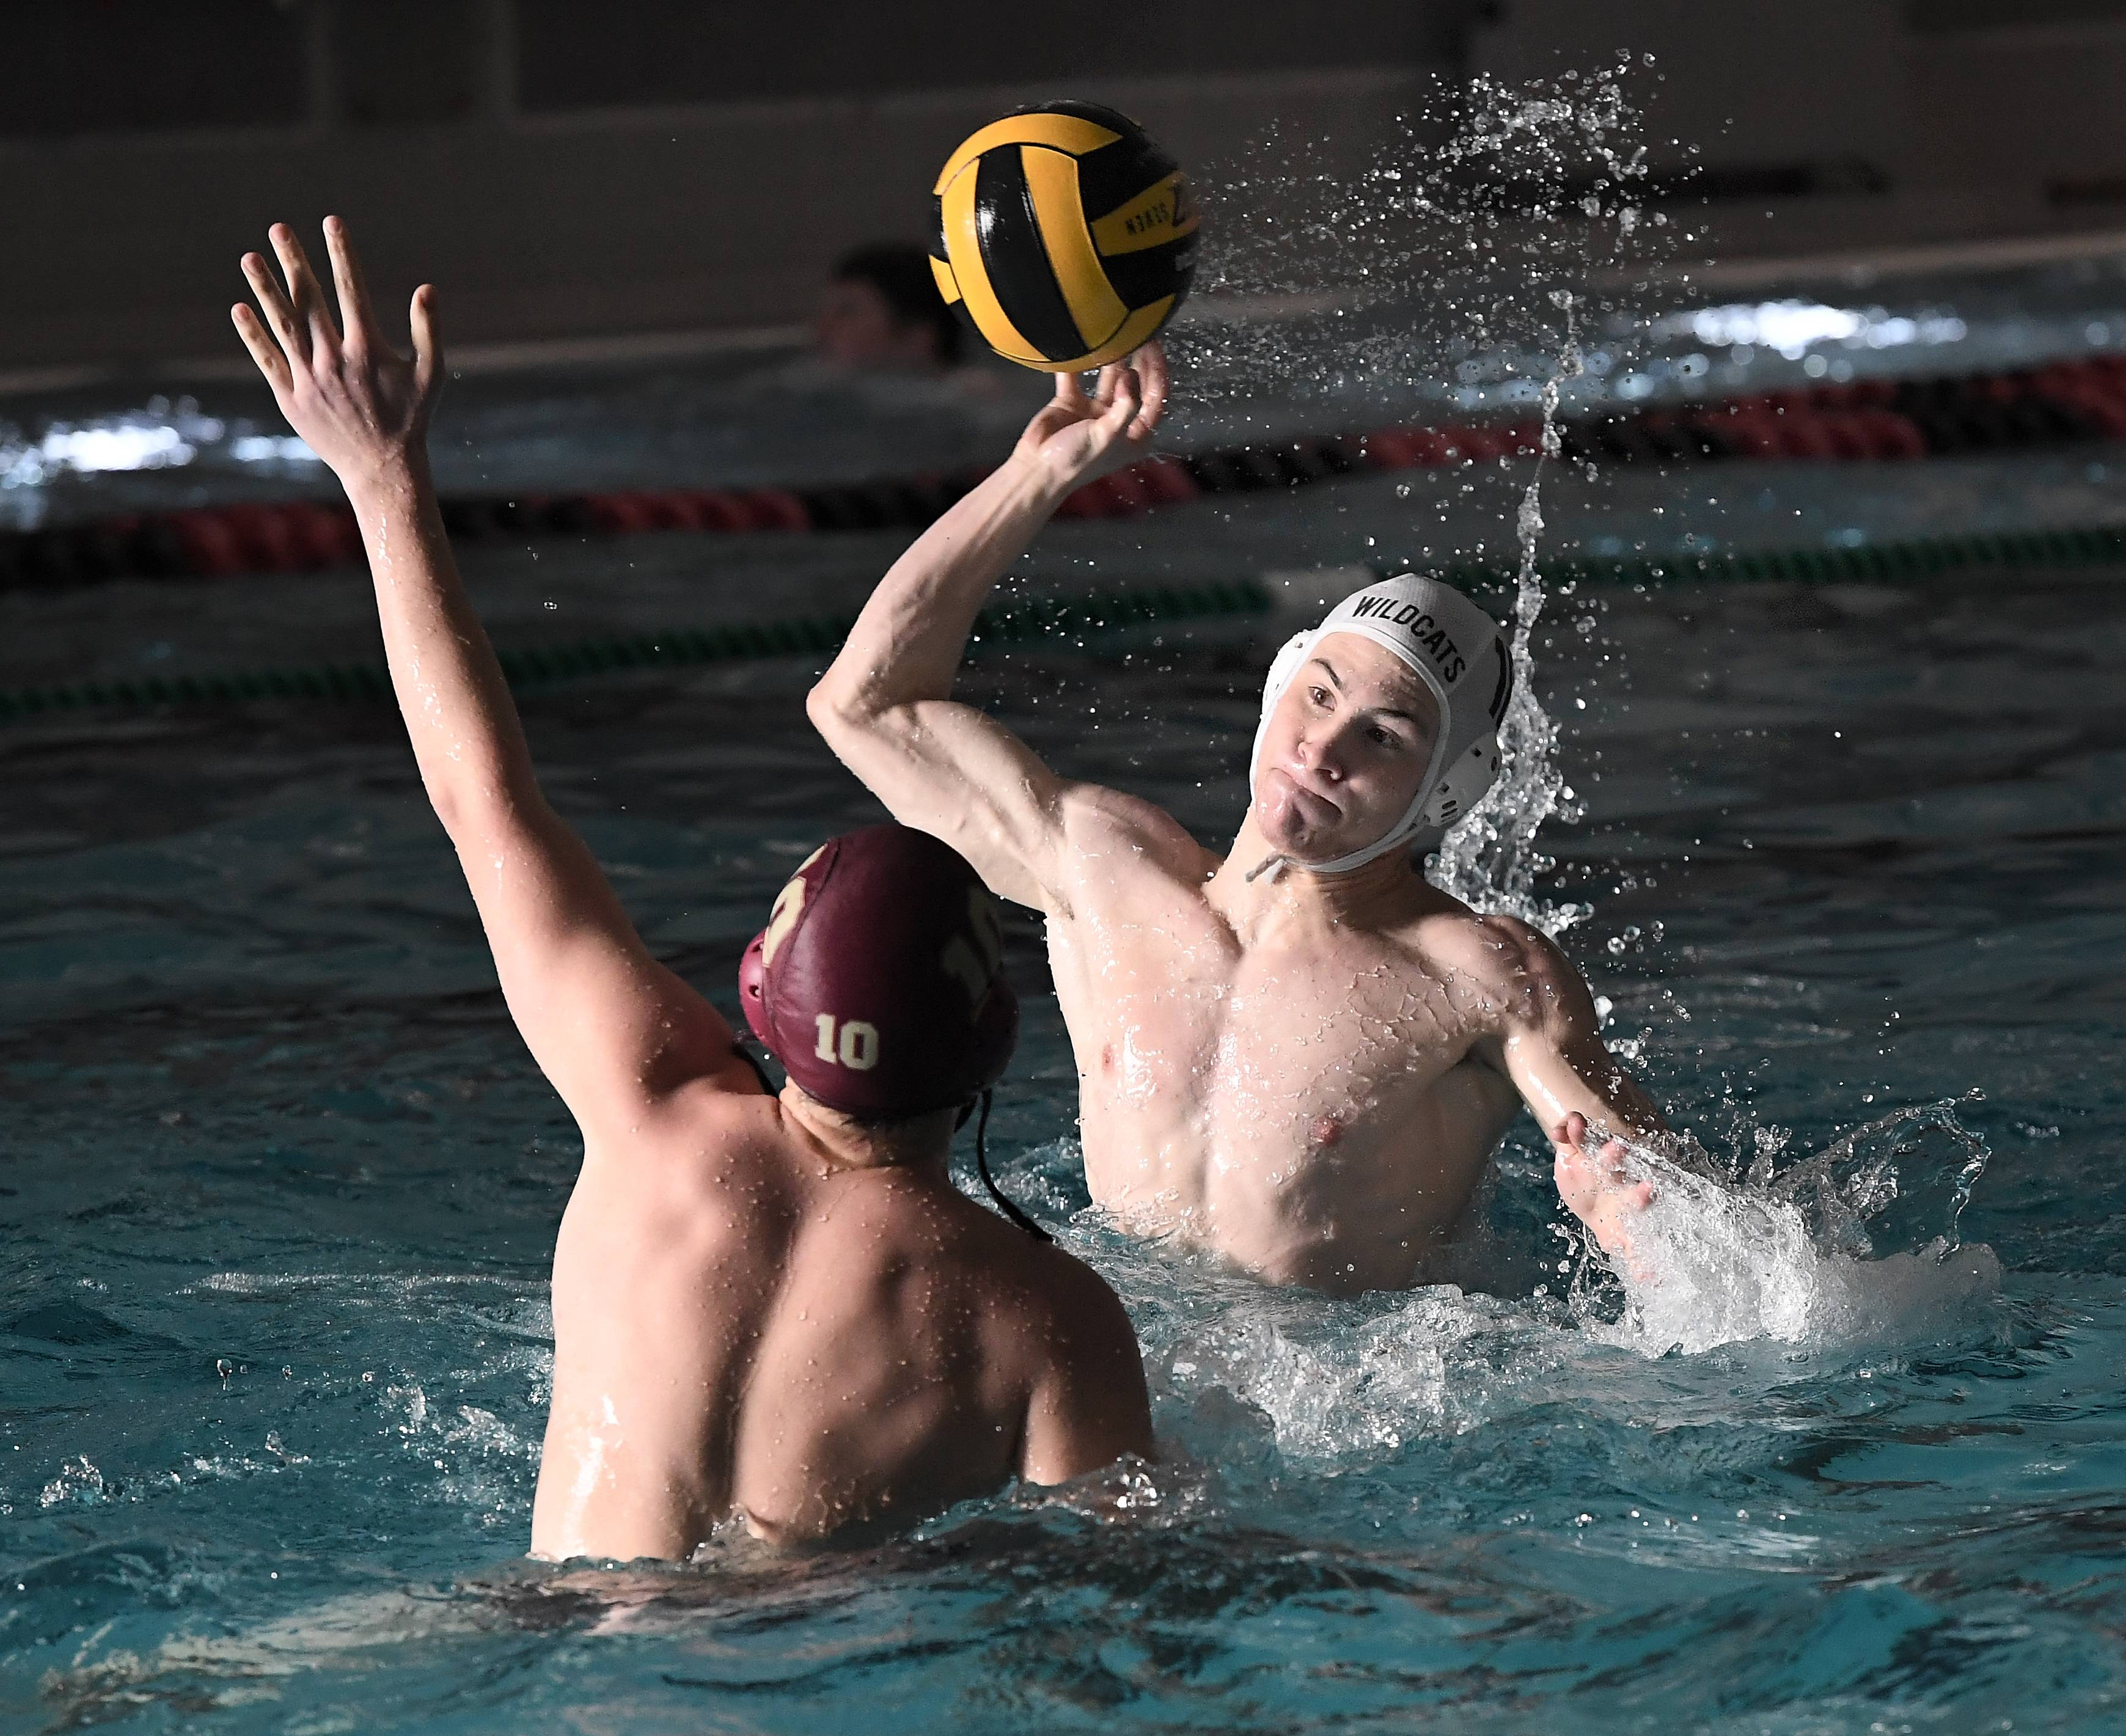 Libertyville's Jonah Armenta fires to the net as Lockport's Trent Lambert defends in the boys water polo varsity invite at Mundelein High School on Saturday.